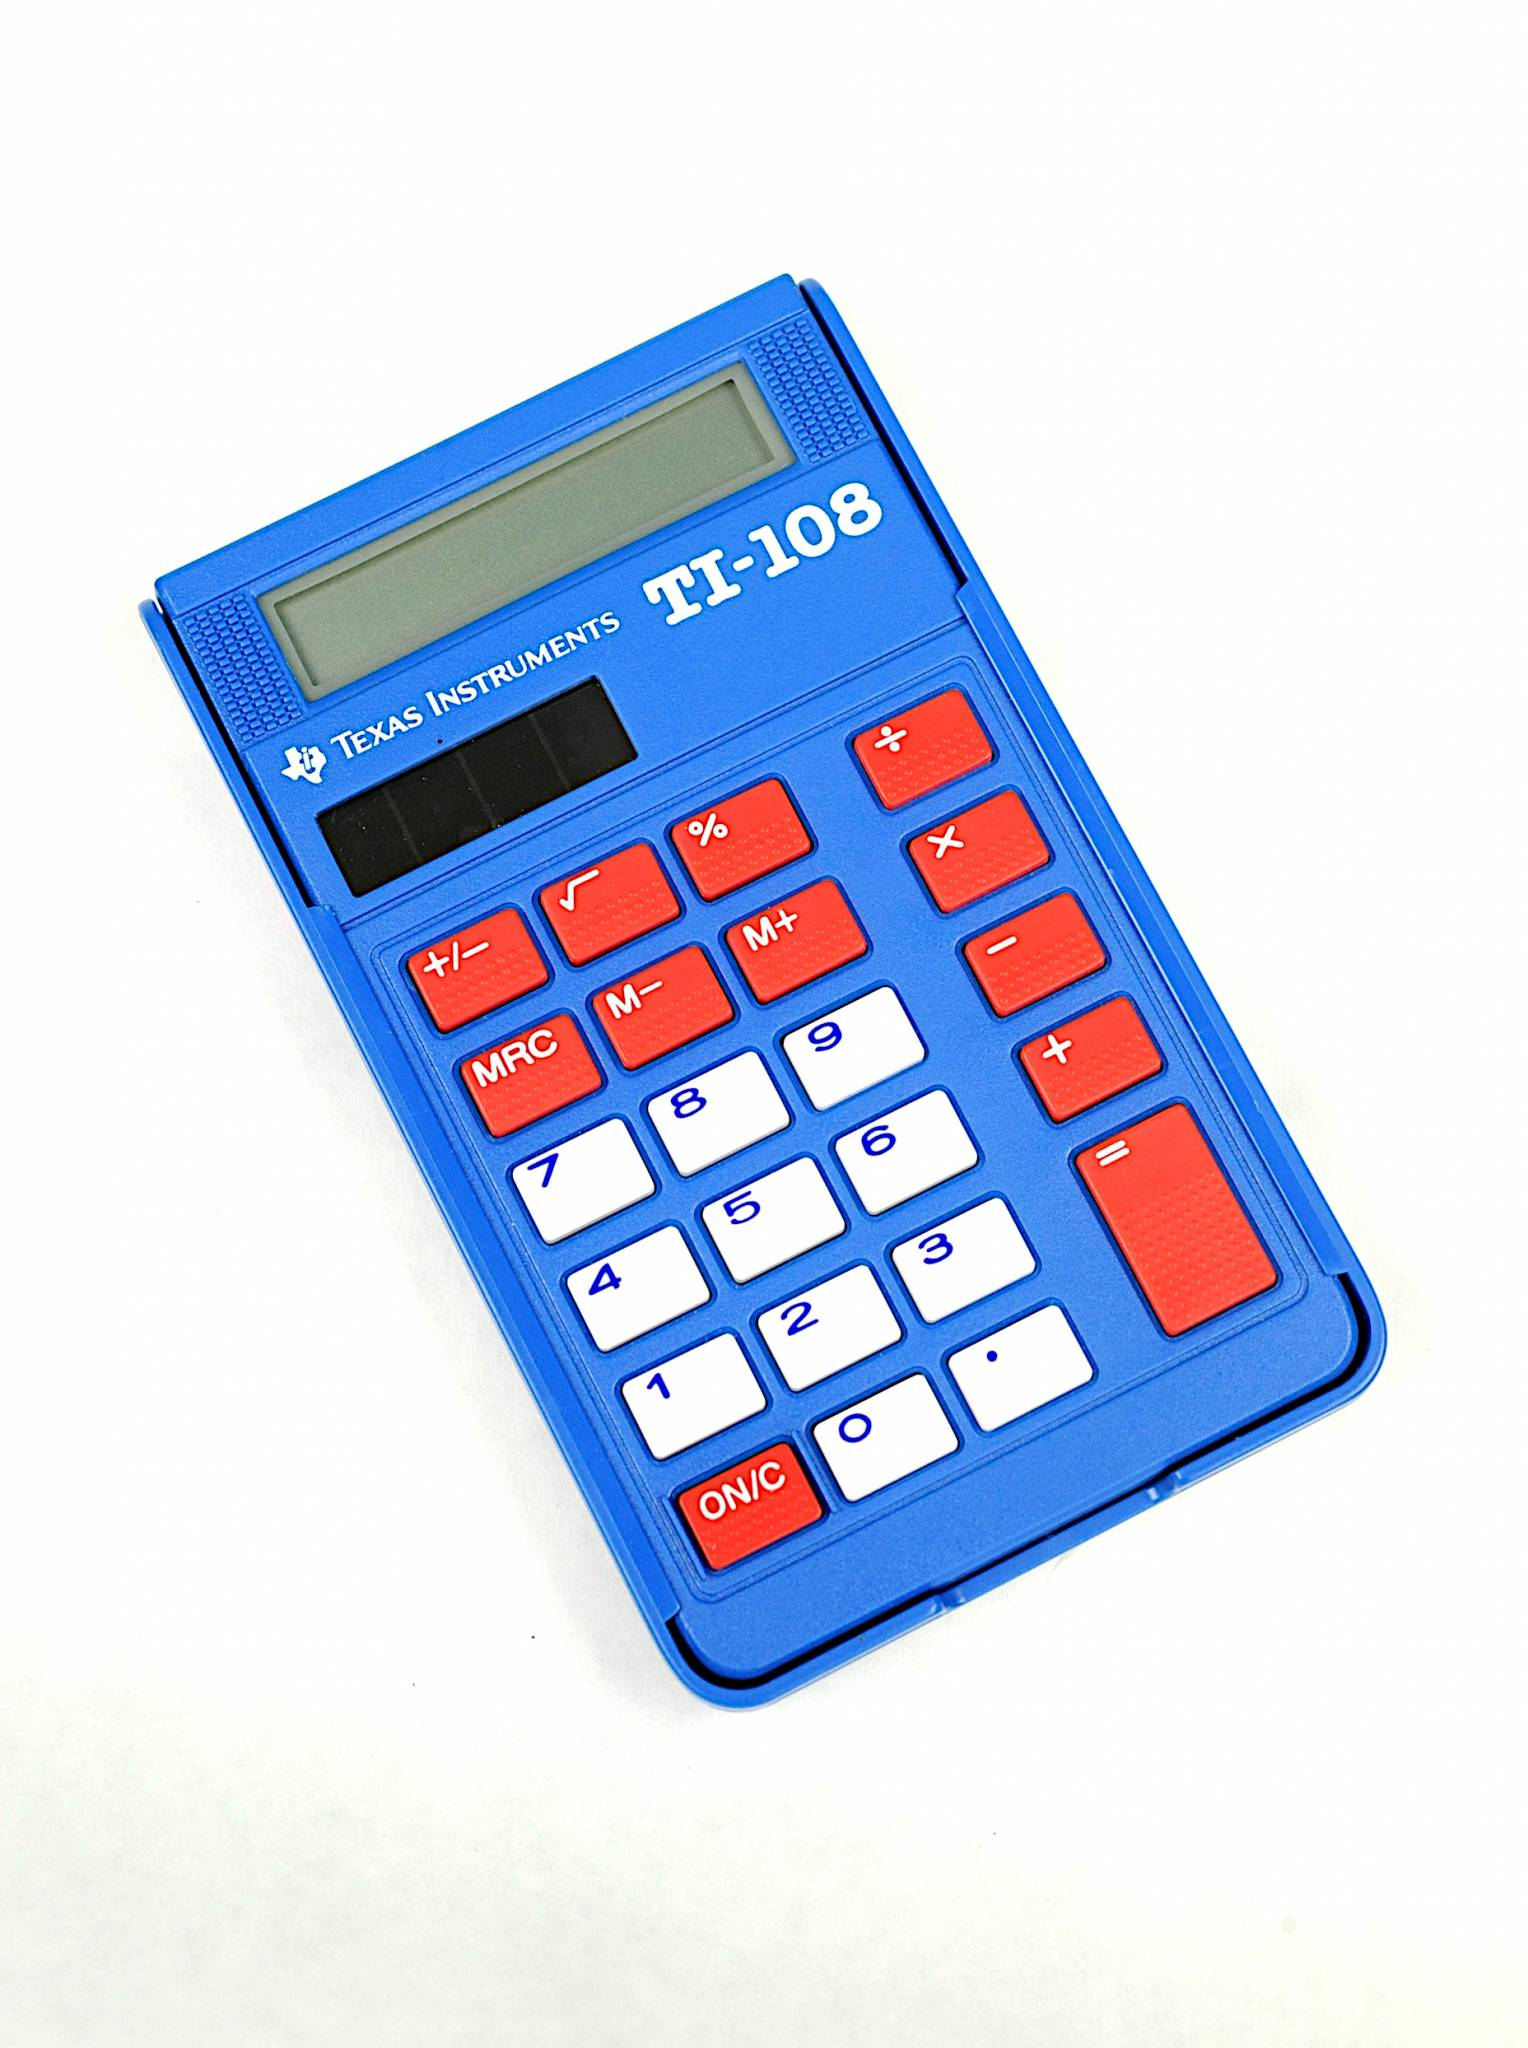 Texas Instruments TI-108 solar power basic calculator